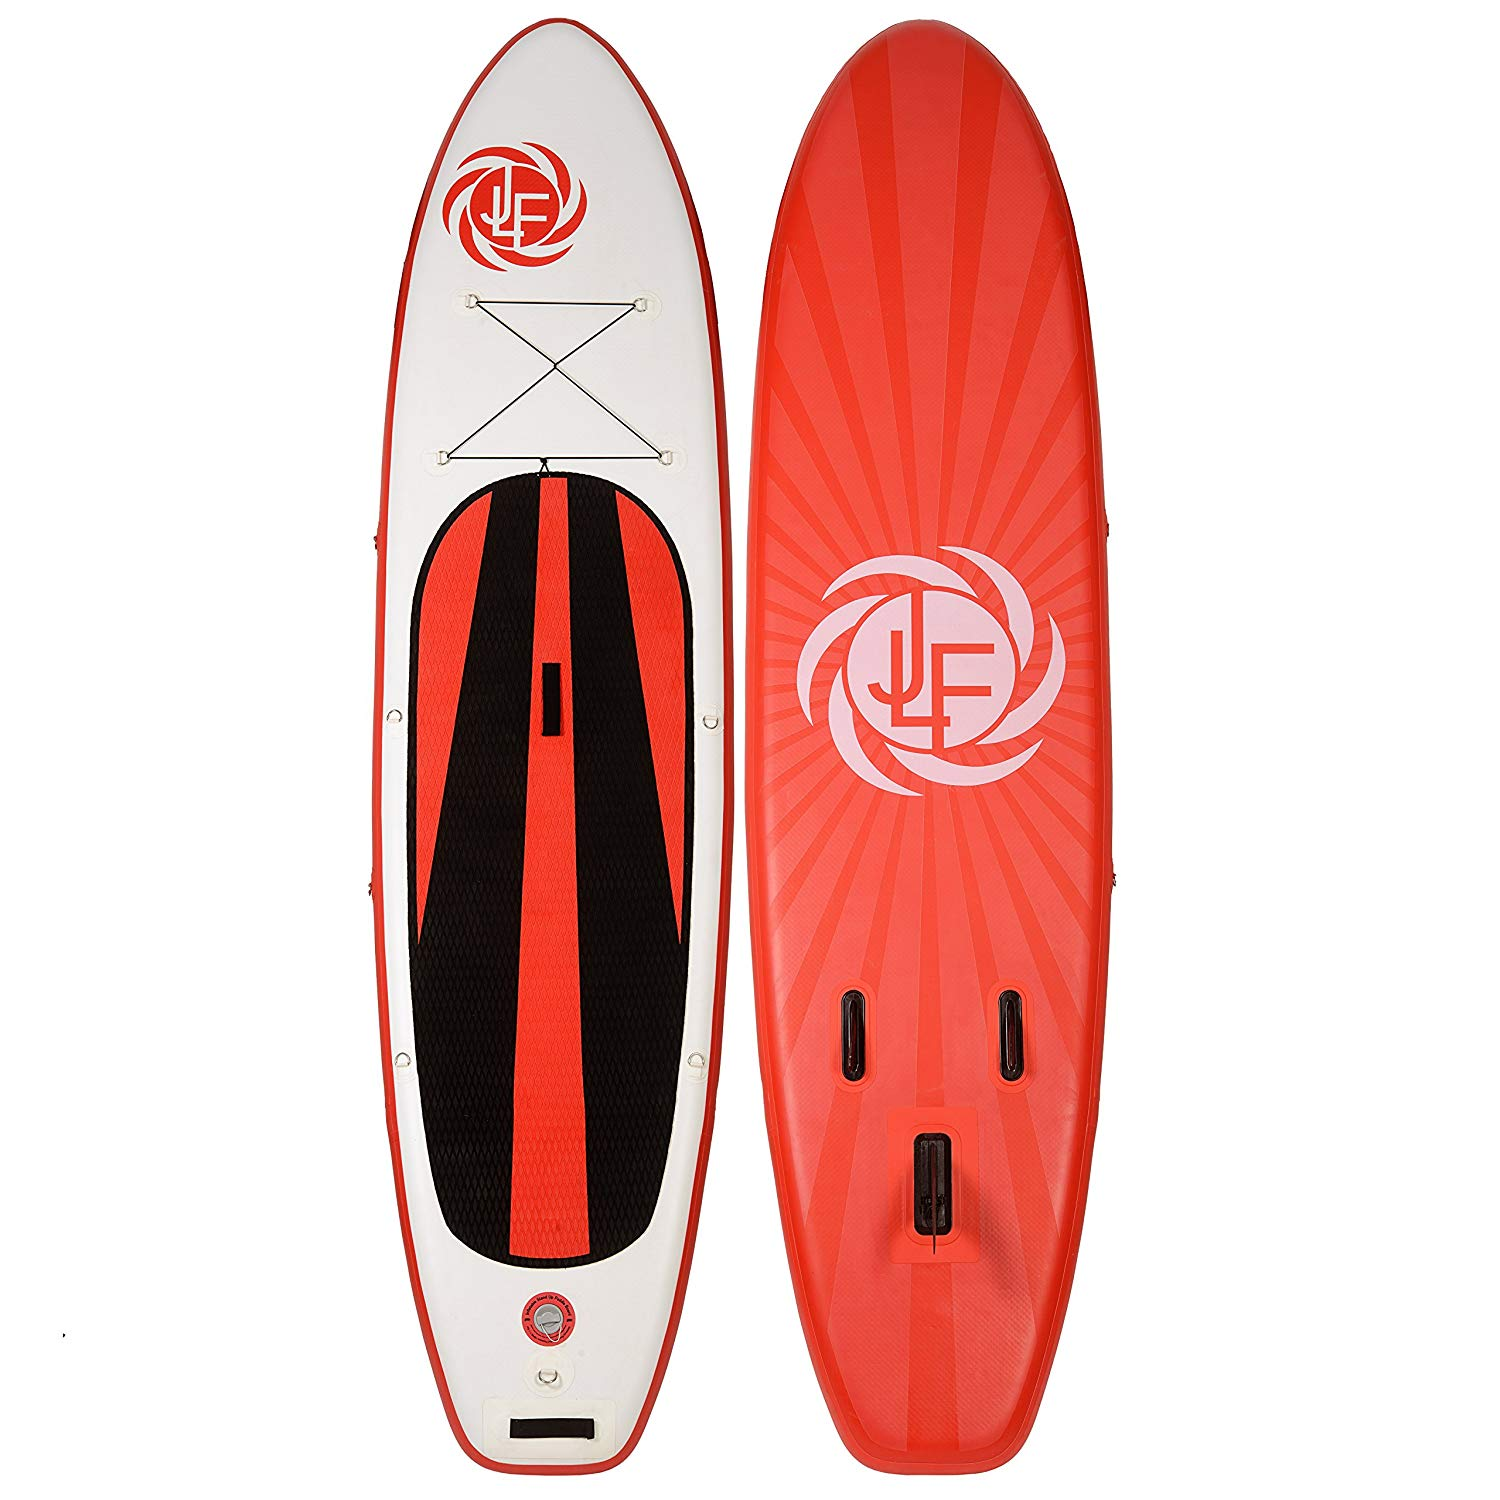 8097c942dff2 Cheap 10 Ft Paddle Board, find 10 Ft Paddle Board deals on line at ...